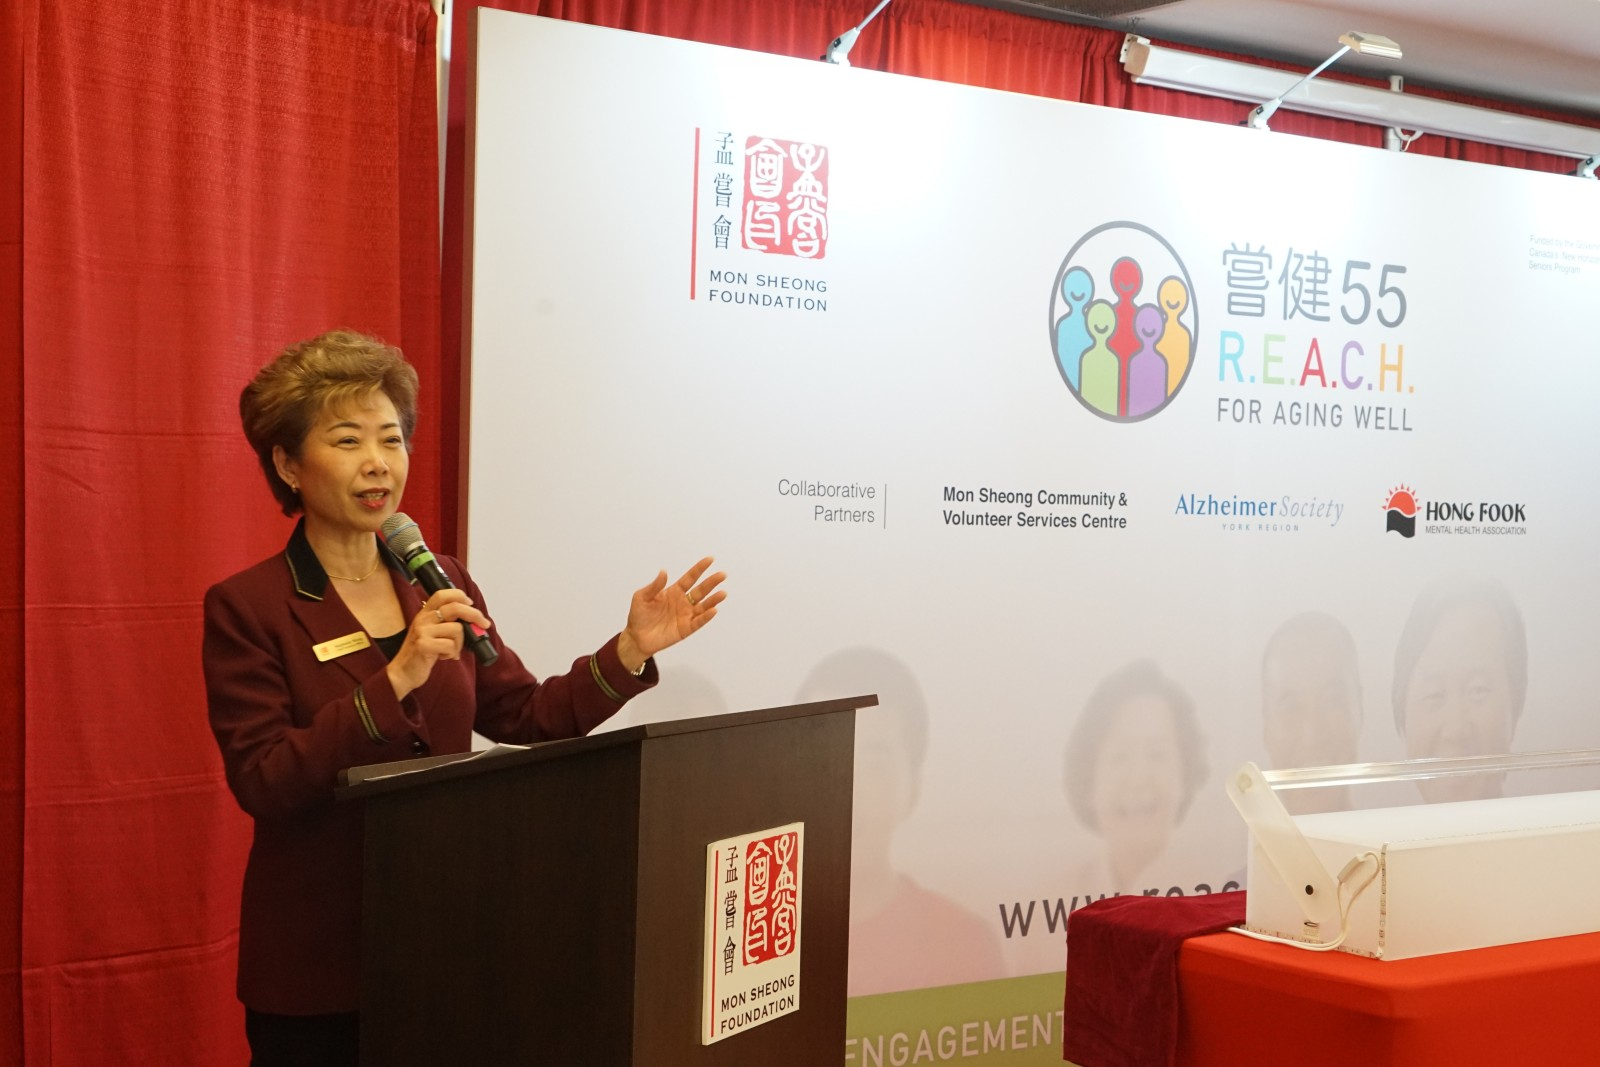 Stephanie Wong, CEO of Mon Sheong Foundation, giving a thank you remarks